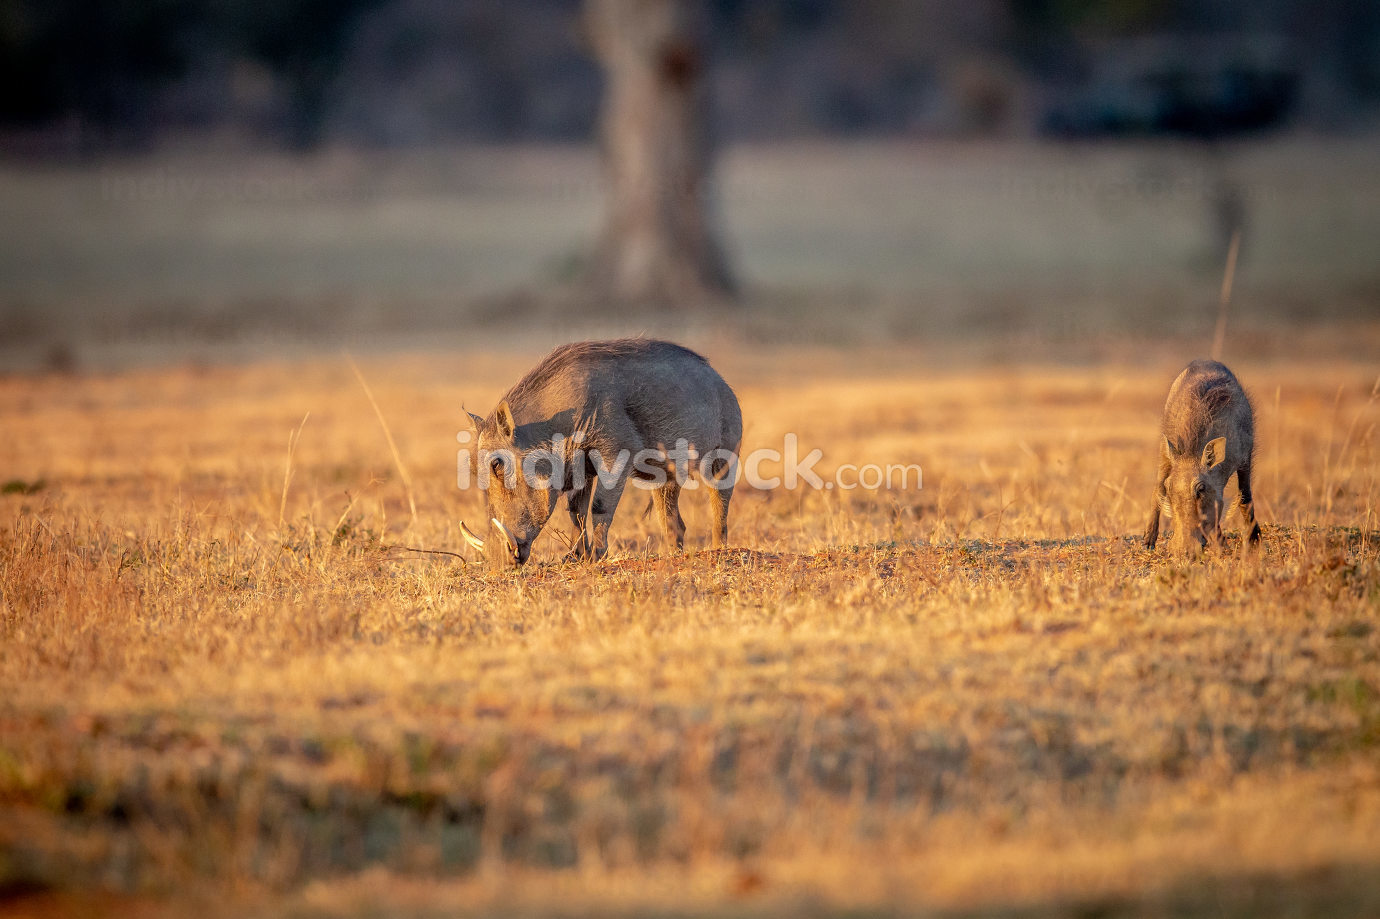 Warthog standing in the grass and grazing.